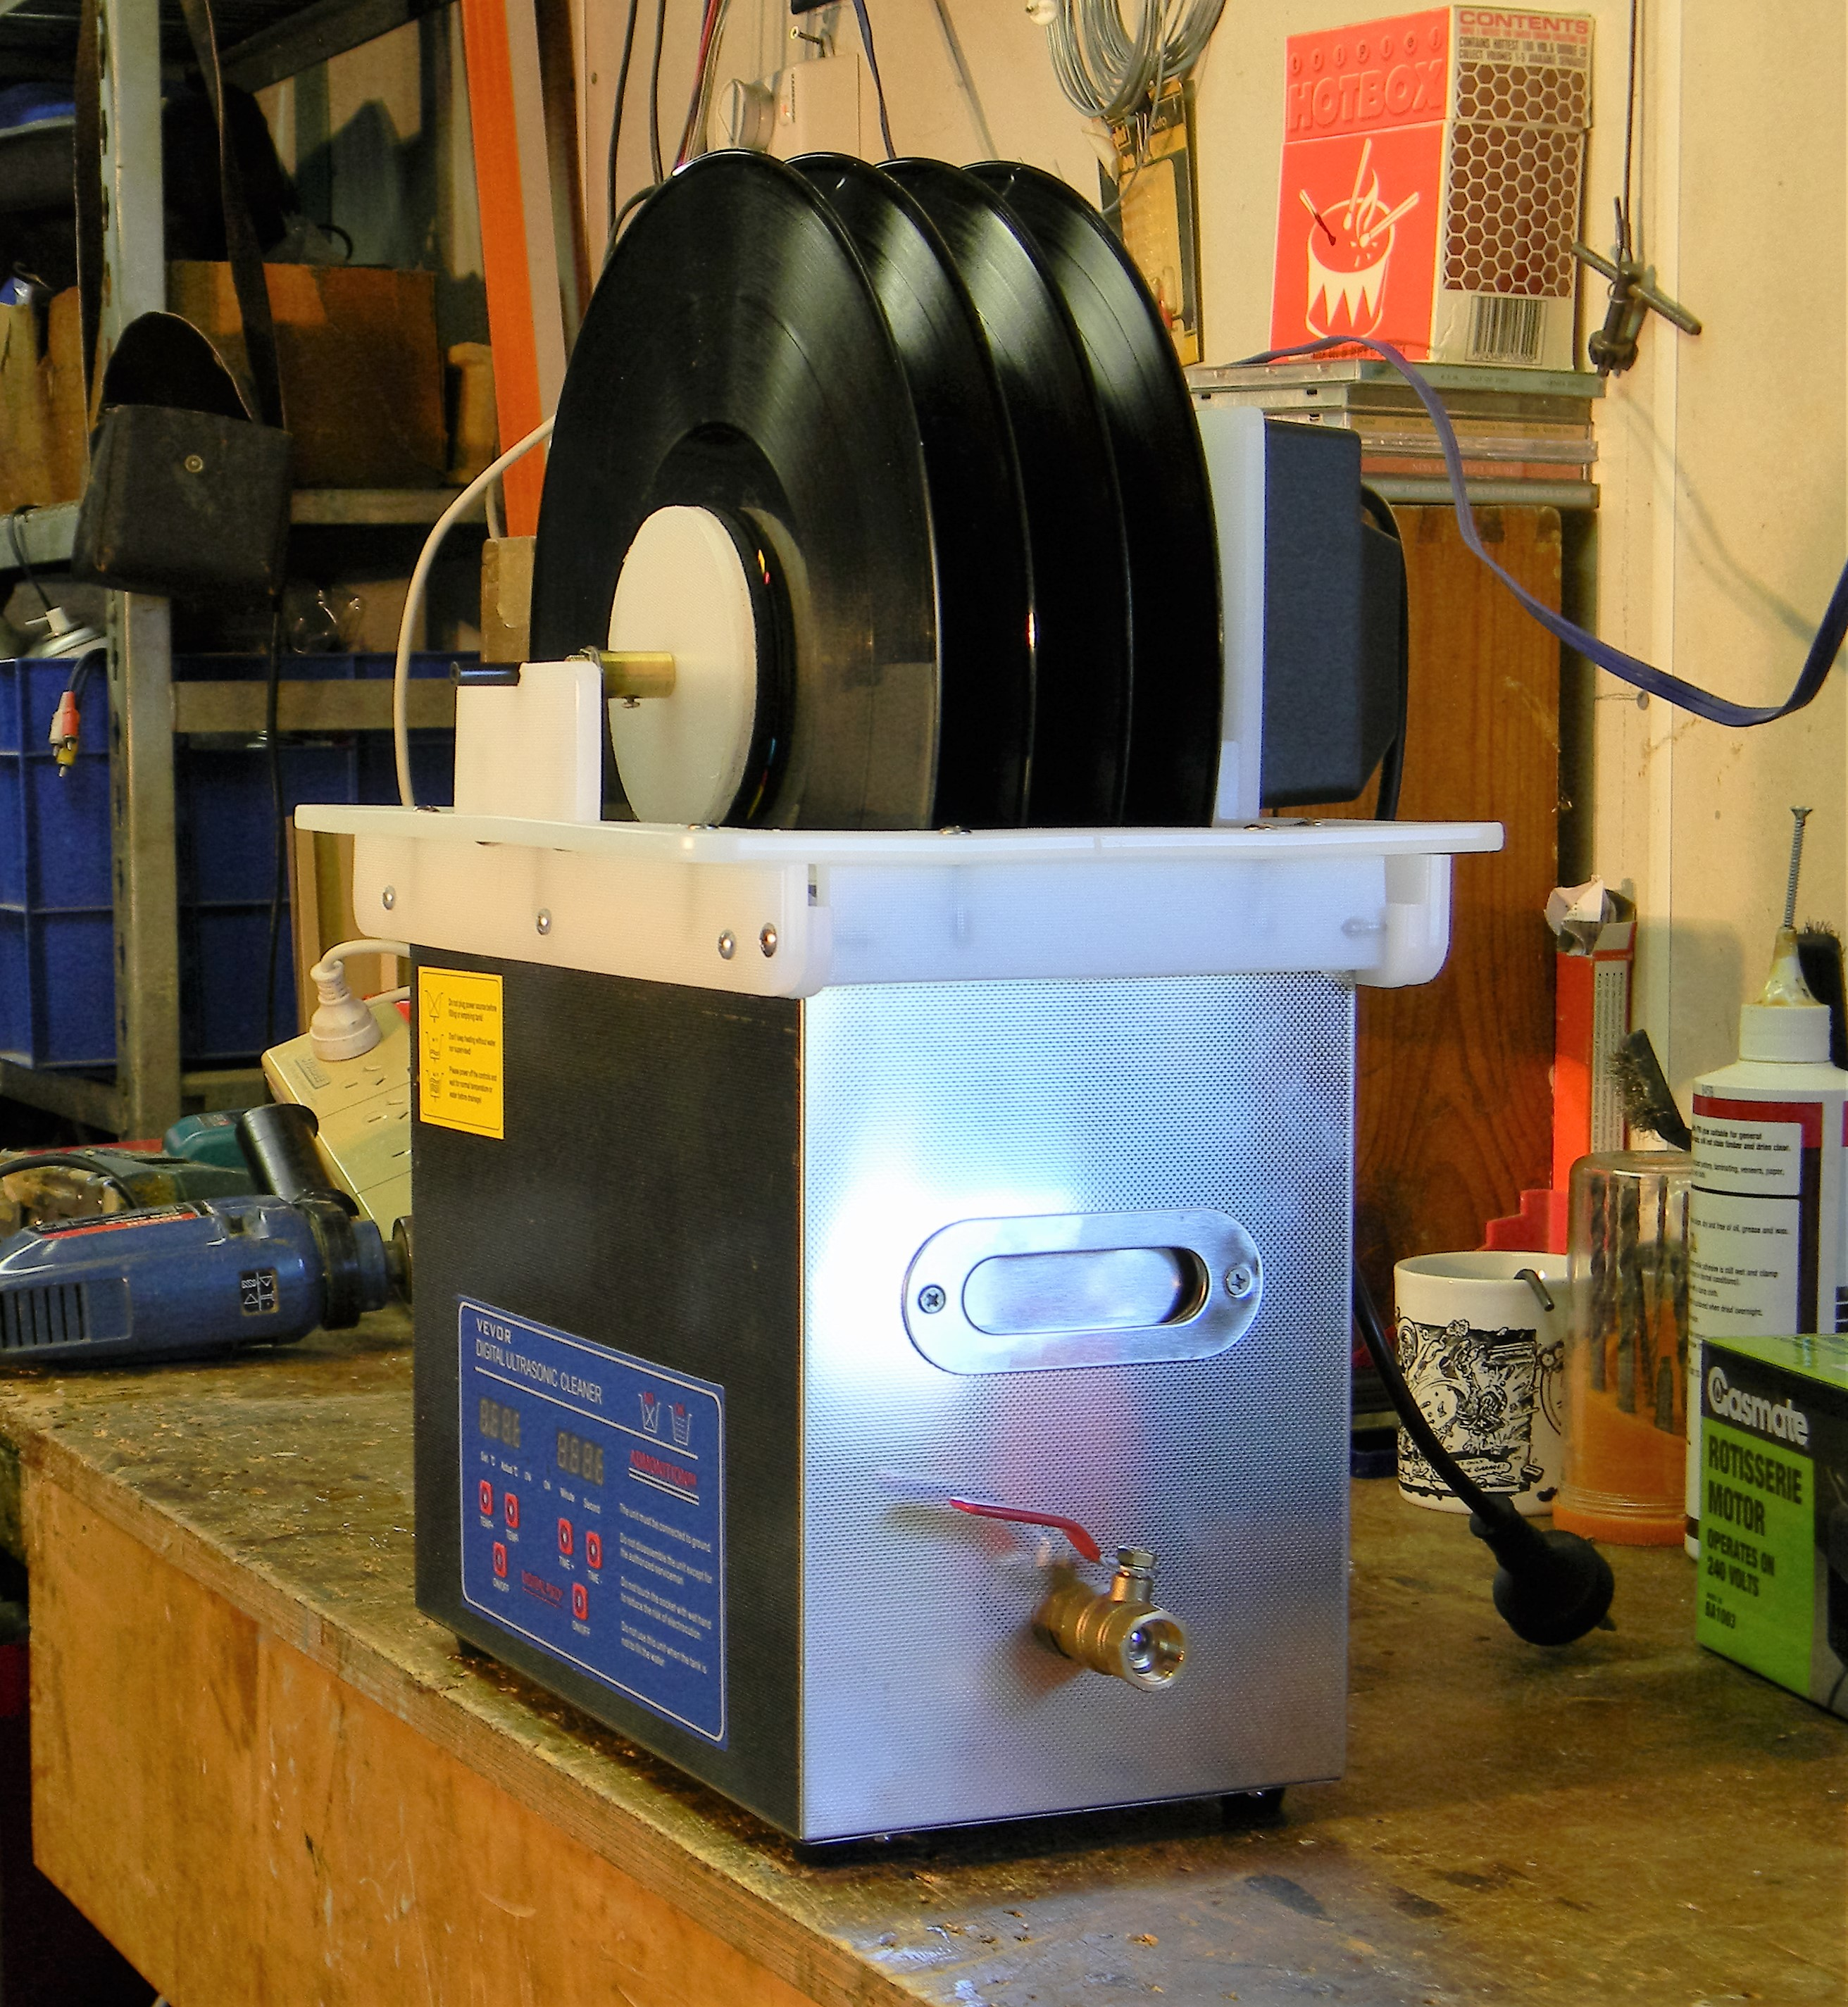 Ultrasonic Record Cleaning with some help from IKEA - Vinyl and